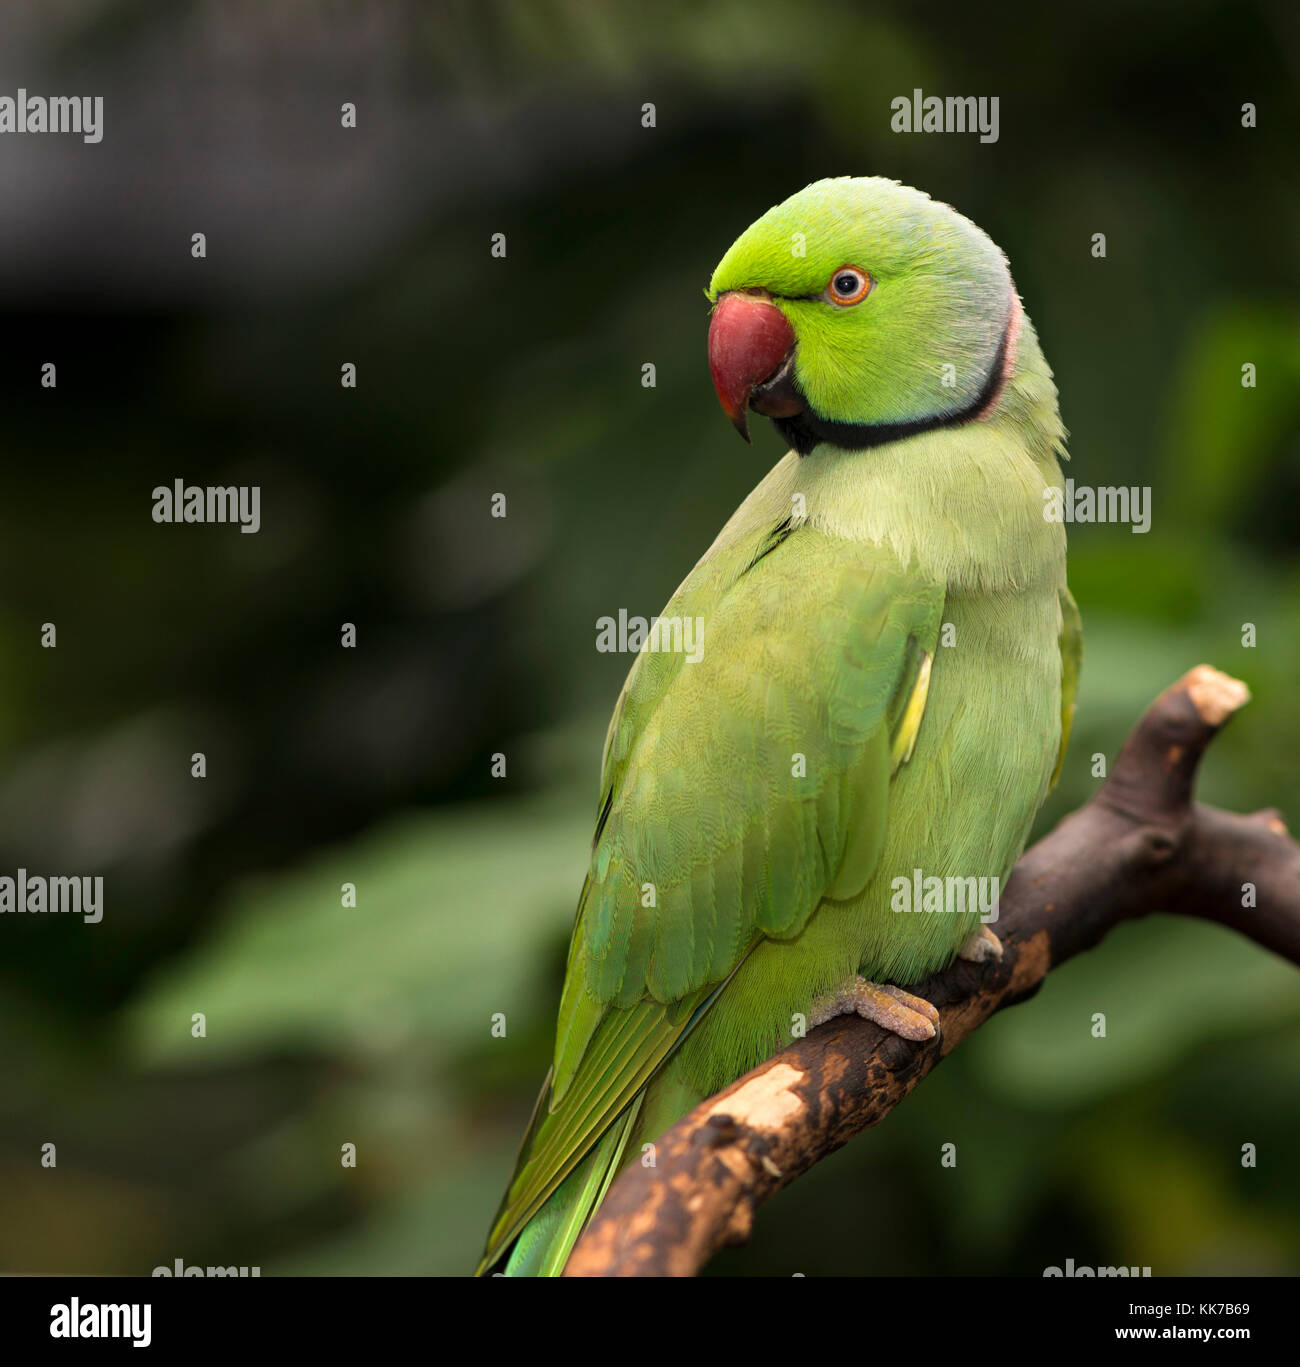 Indian Ringneck parrot perched on a branch - Stock Image